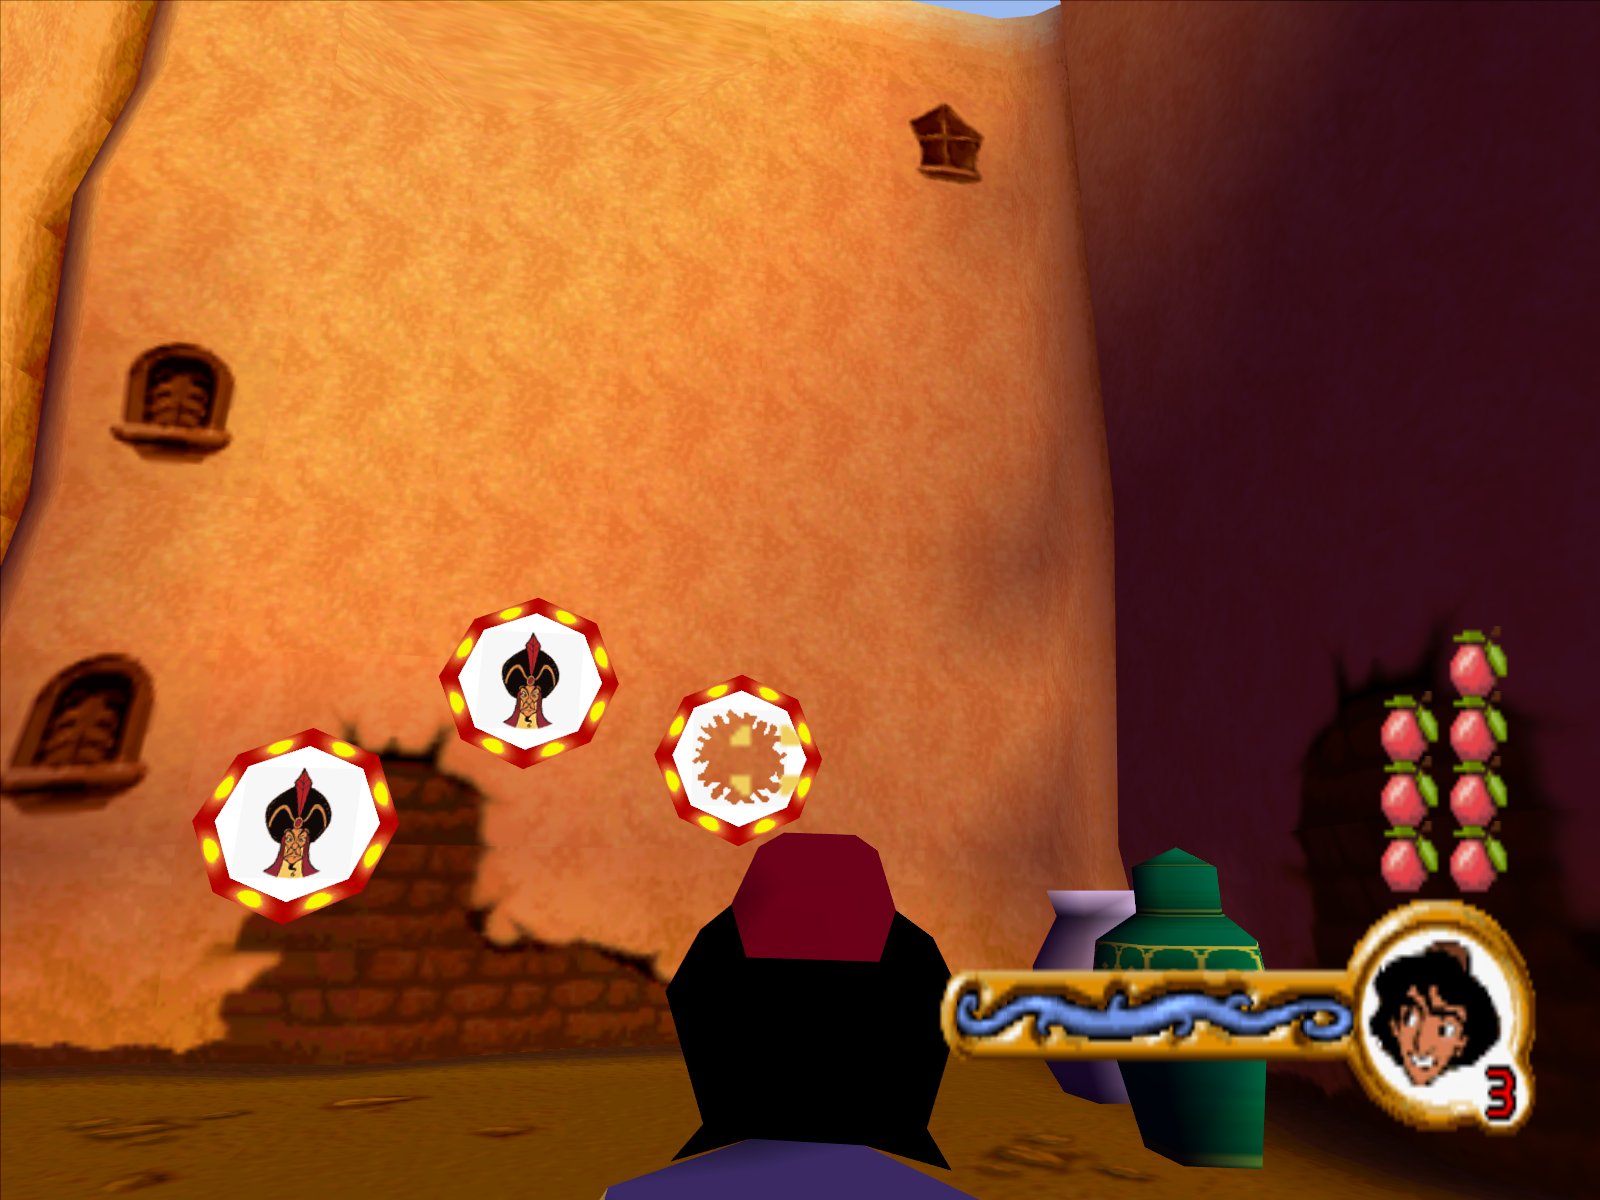 Disney's Aladdin in Nasira's Revenge Windows Target practice with the apples